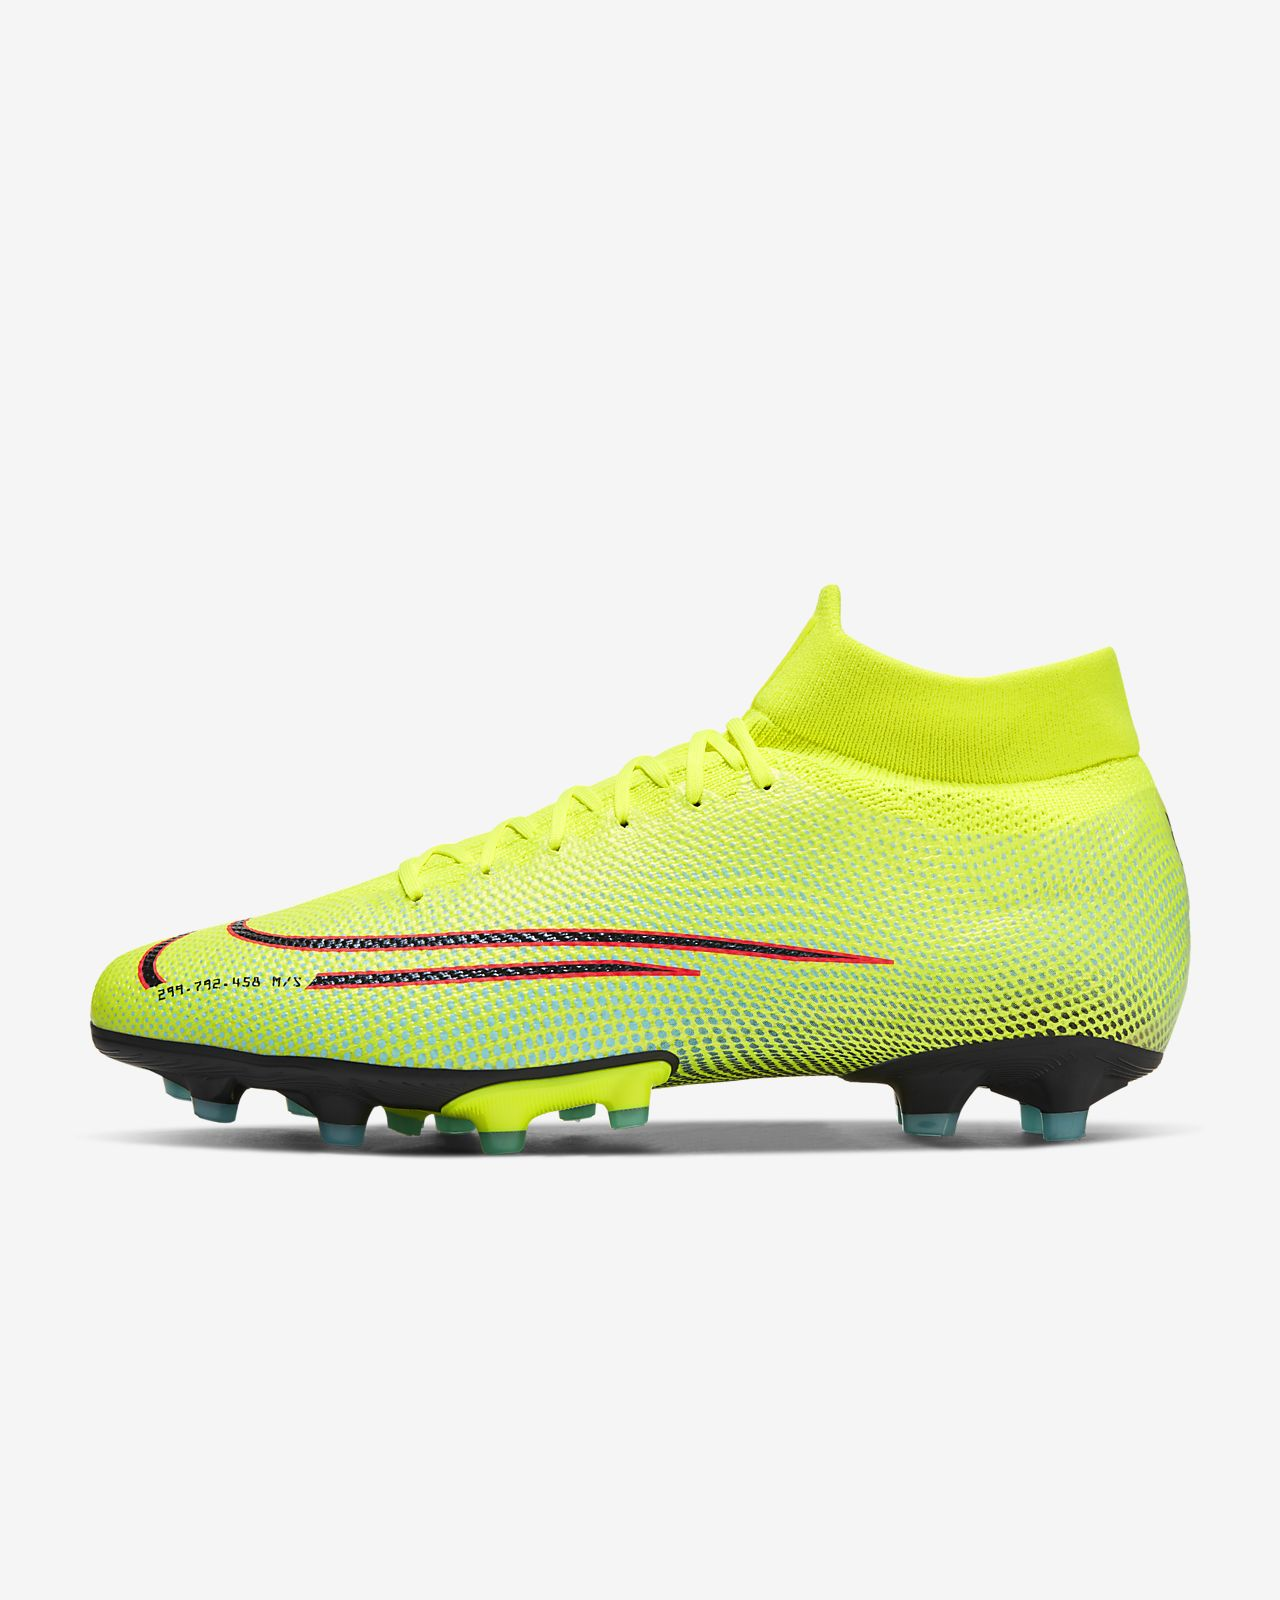 Chaussure de football à crampons pour terrain synthétique Nike Mercurial Superfly 7 Pro MDS AG-PRO